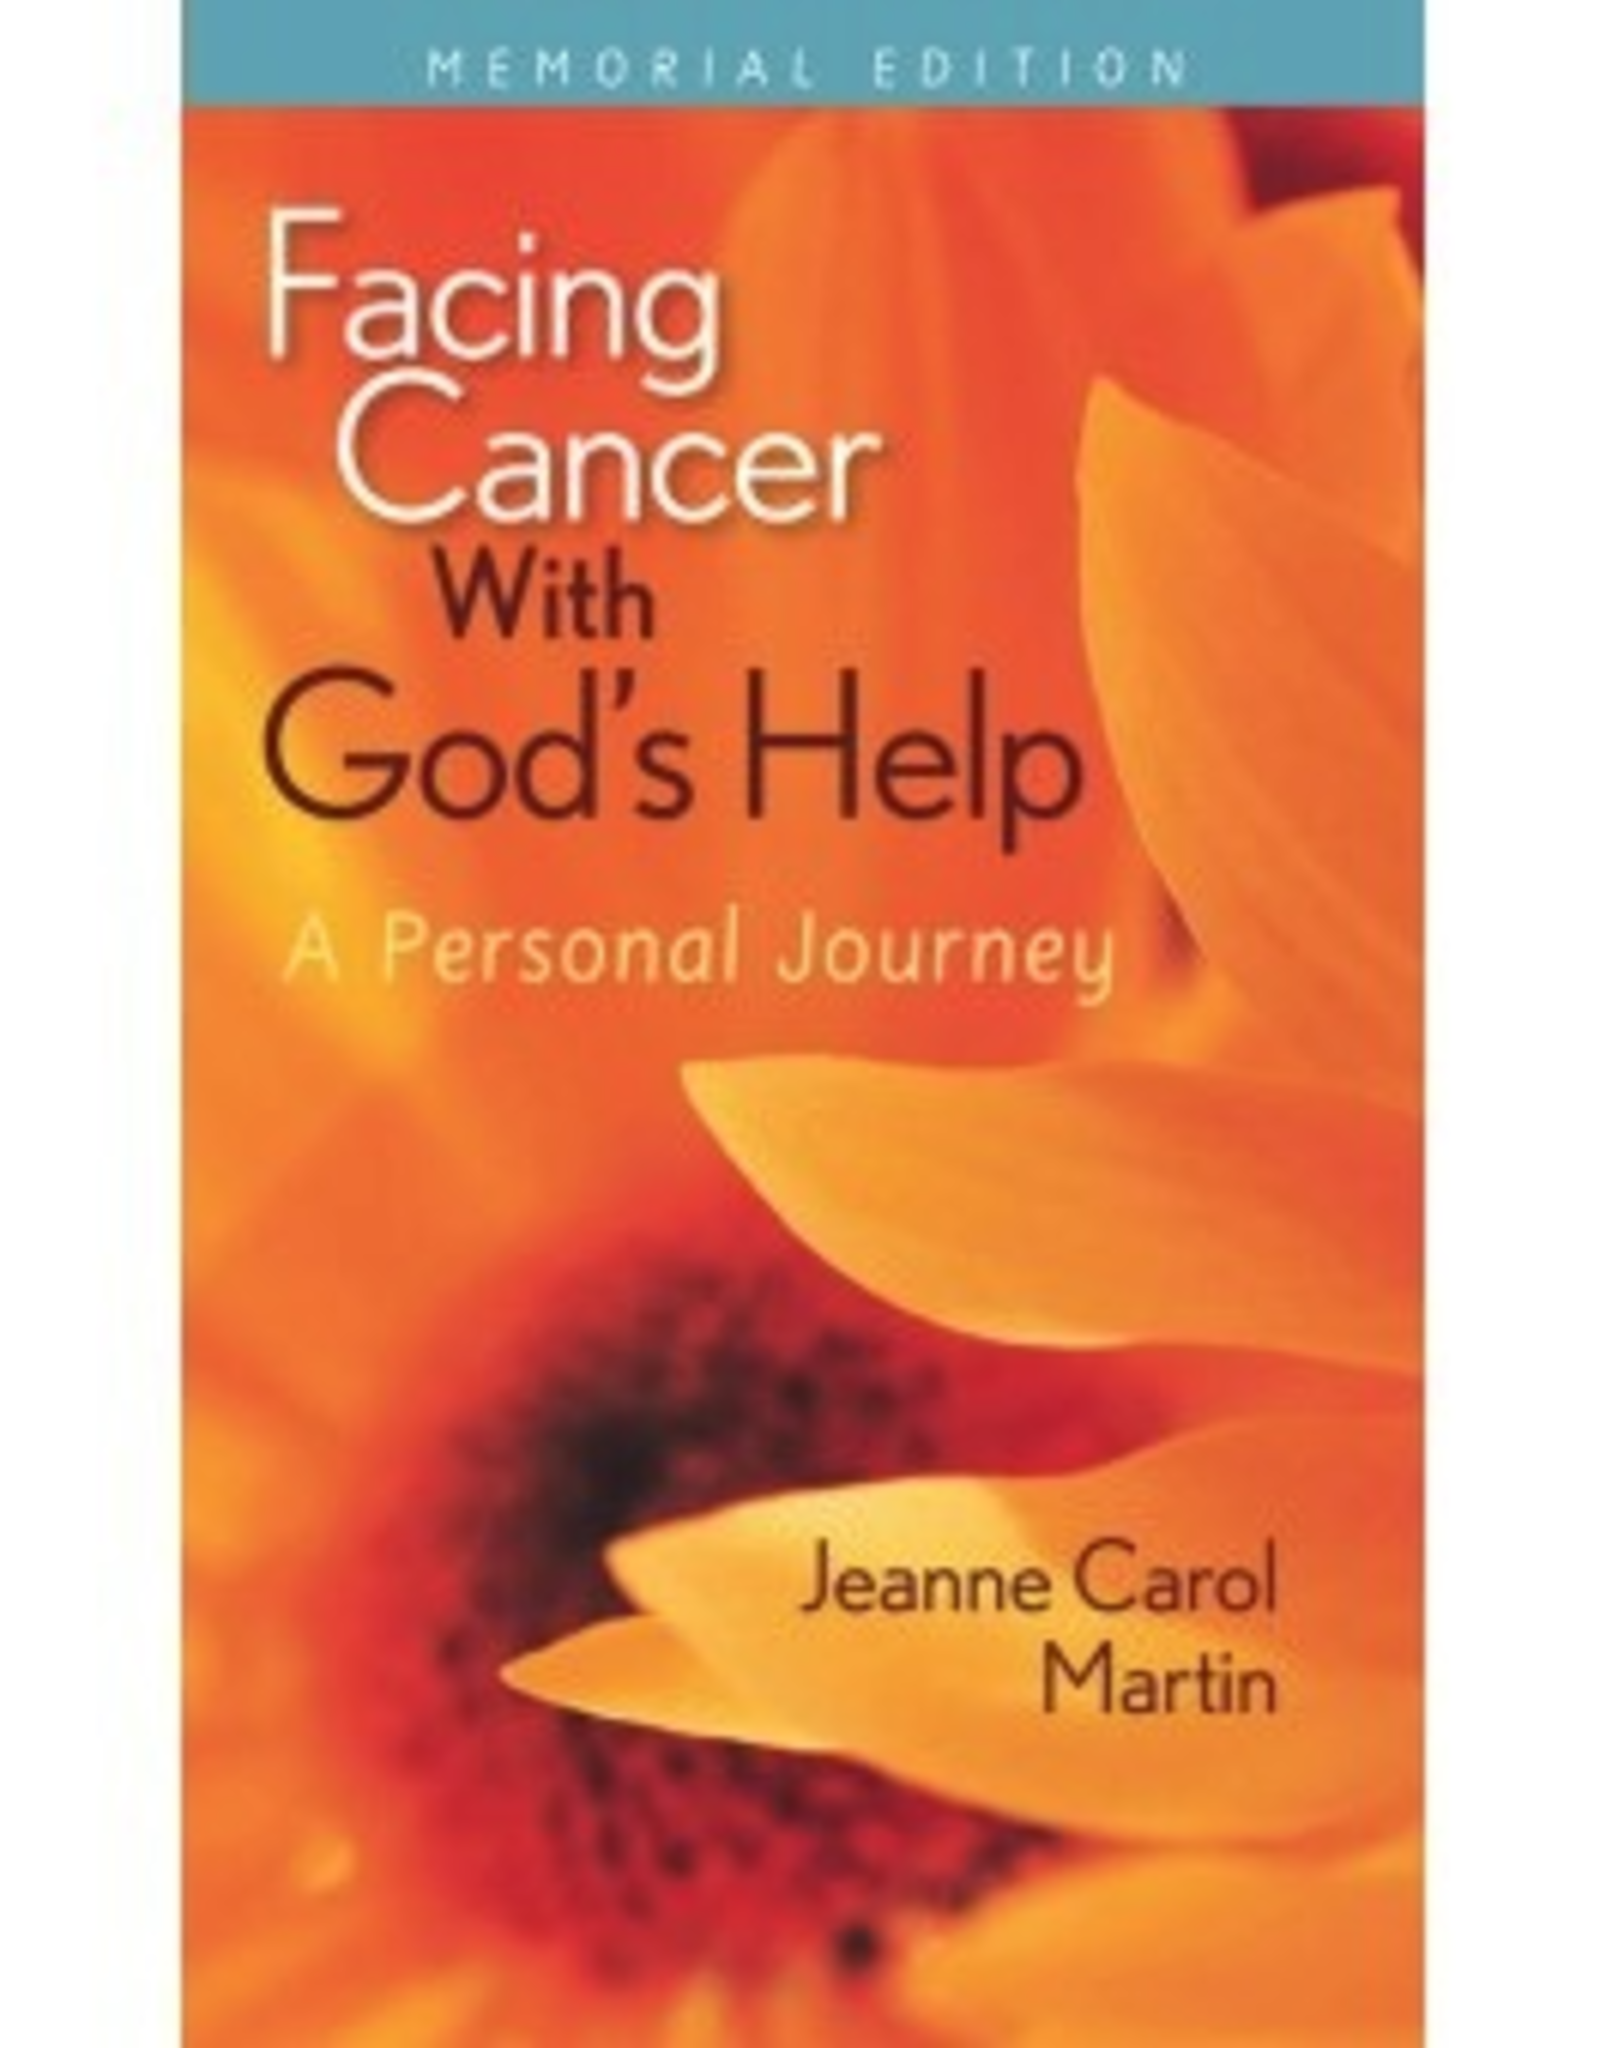 Liguori Facing Cancer with God's Help (Memorial Edition):  A Personal Journey, by Jeanne Carol Martin (paperback)